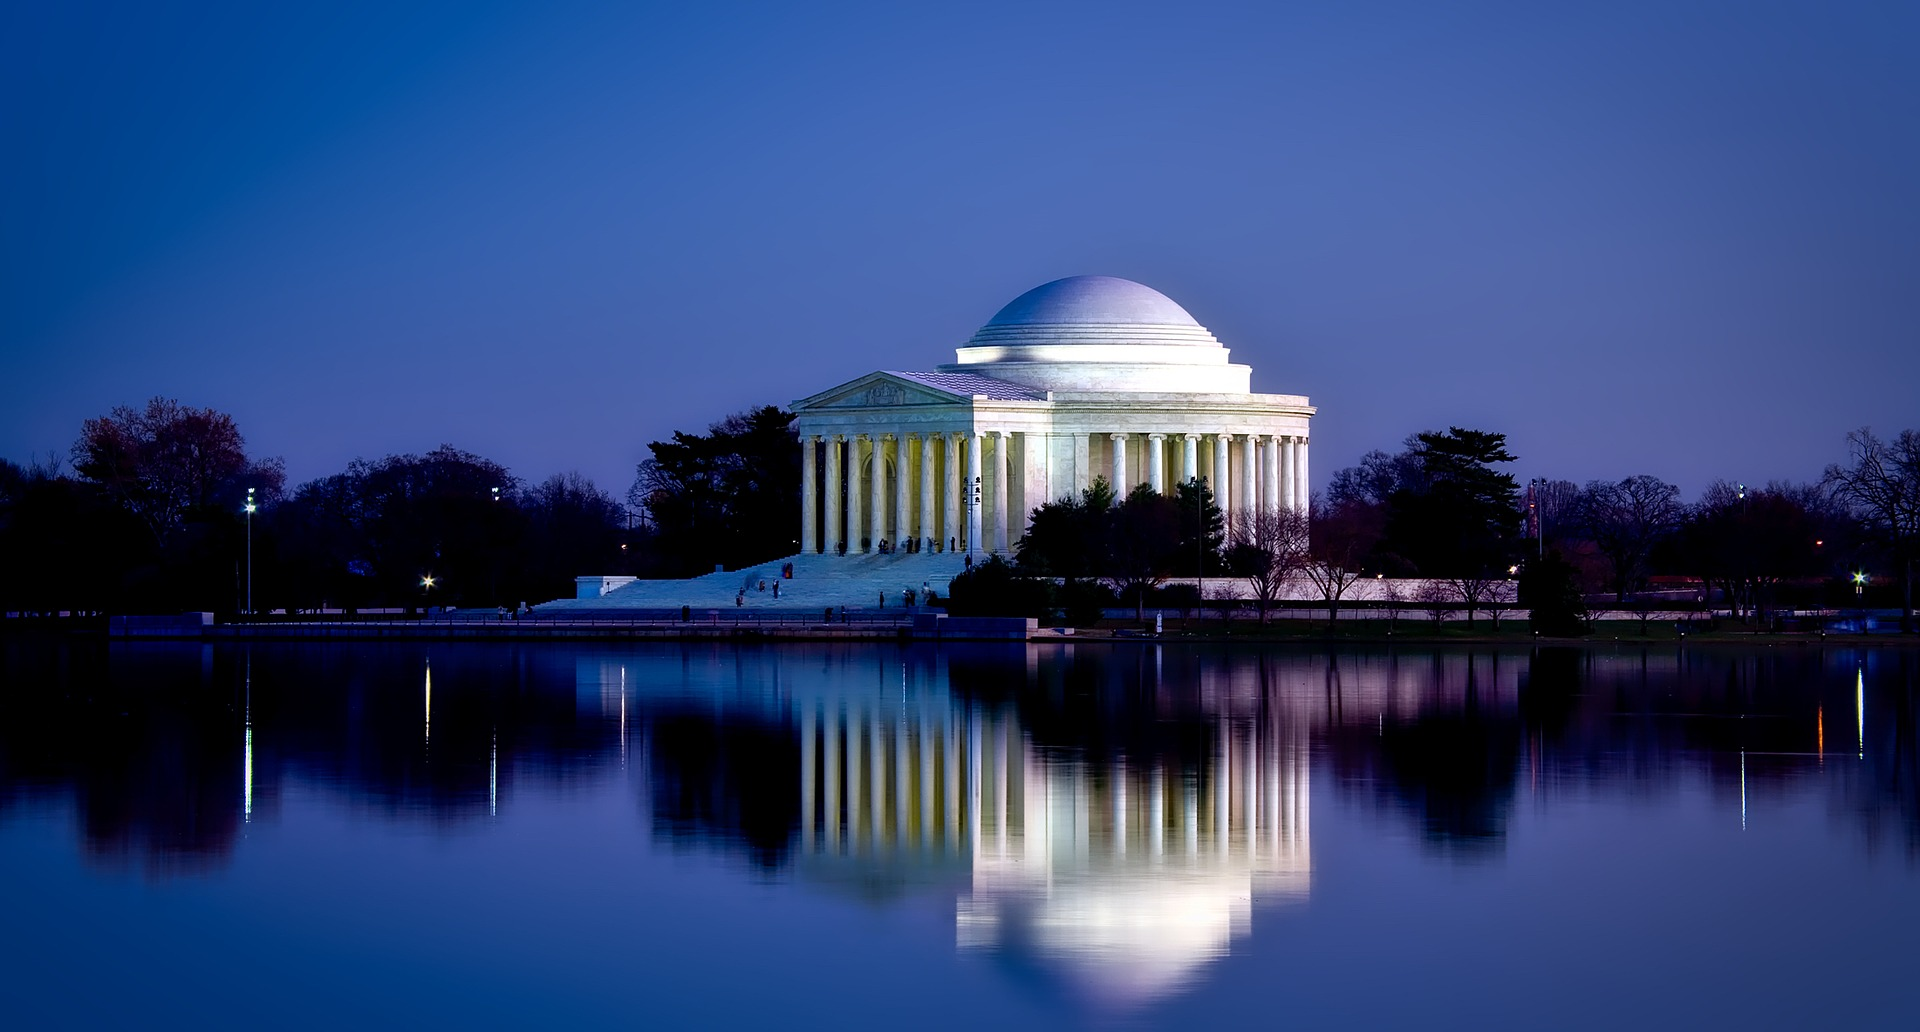 Thomas Jefferson Memorial, Washington, DC